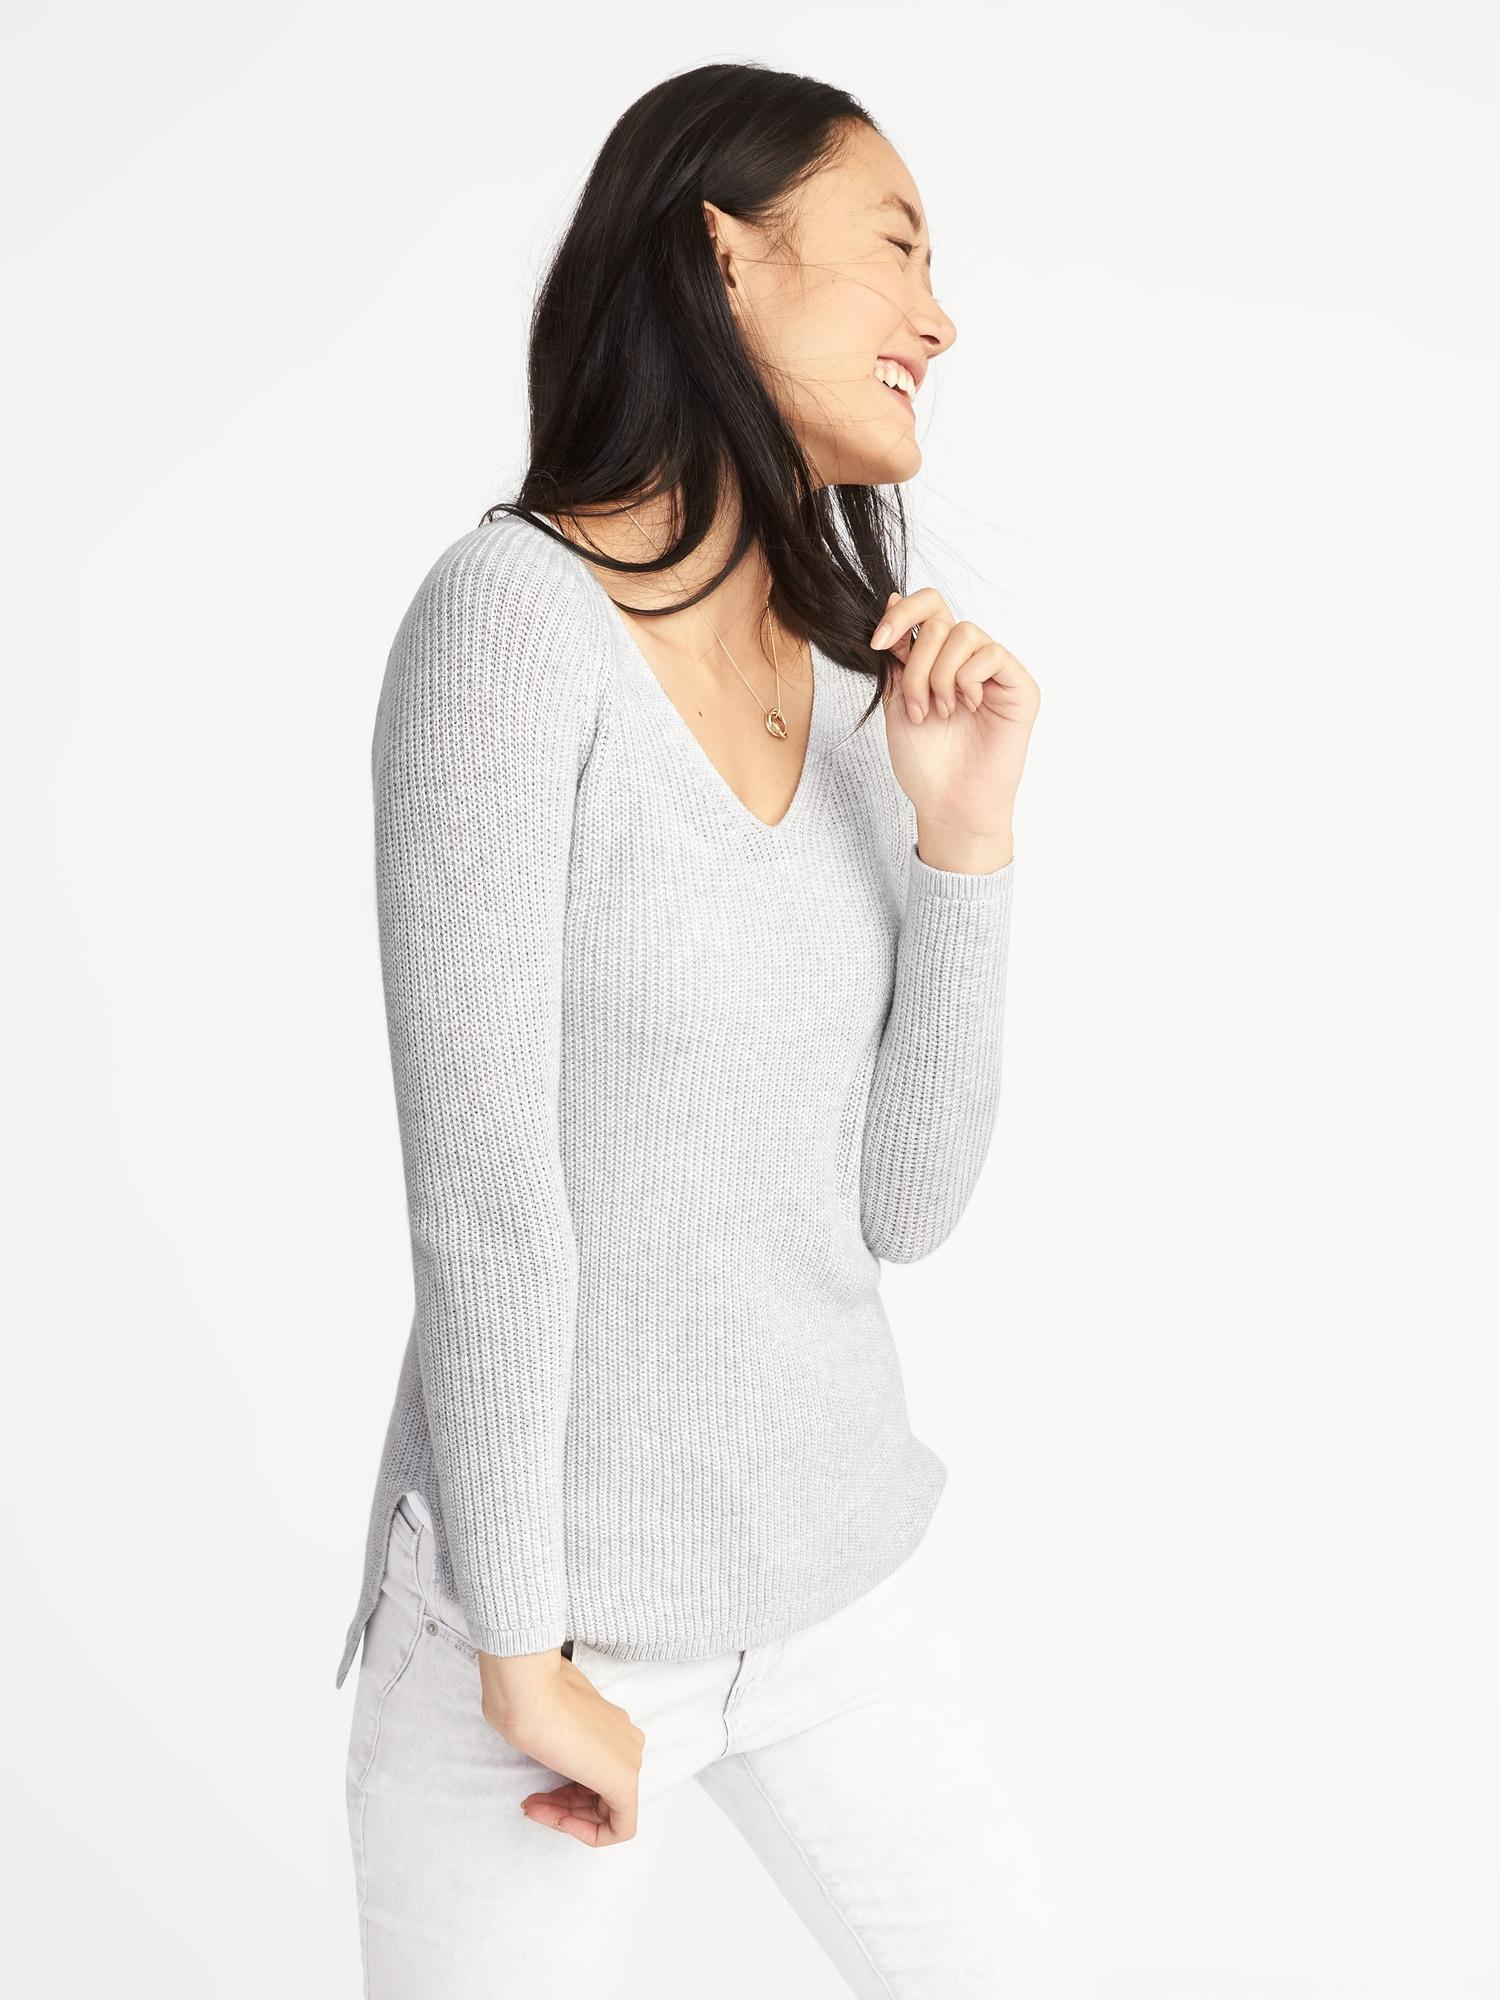 91d24e62d3 Lyst - Old Navy Shaker-stitch V-neck Sweater in Gray